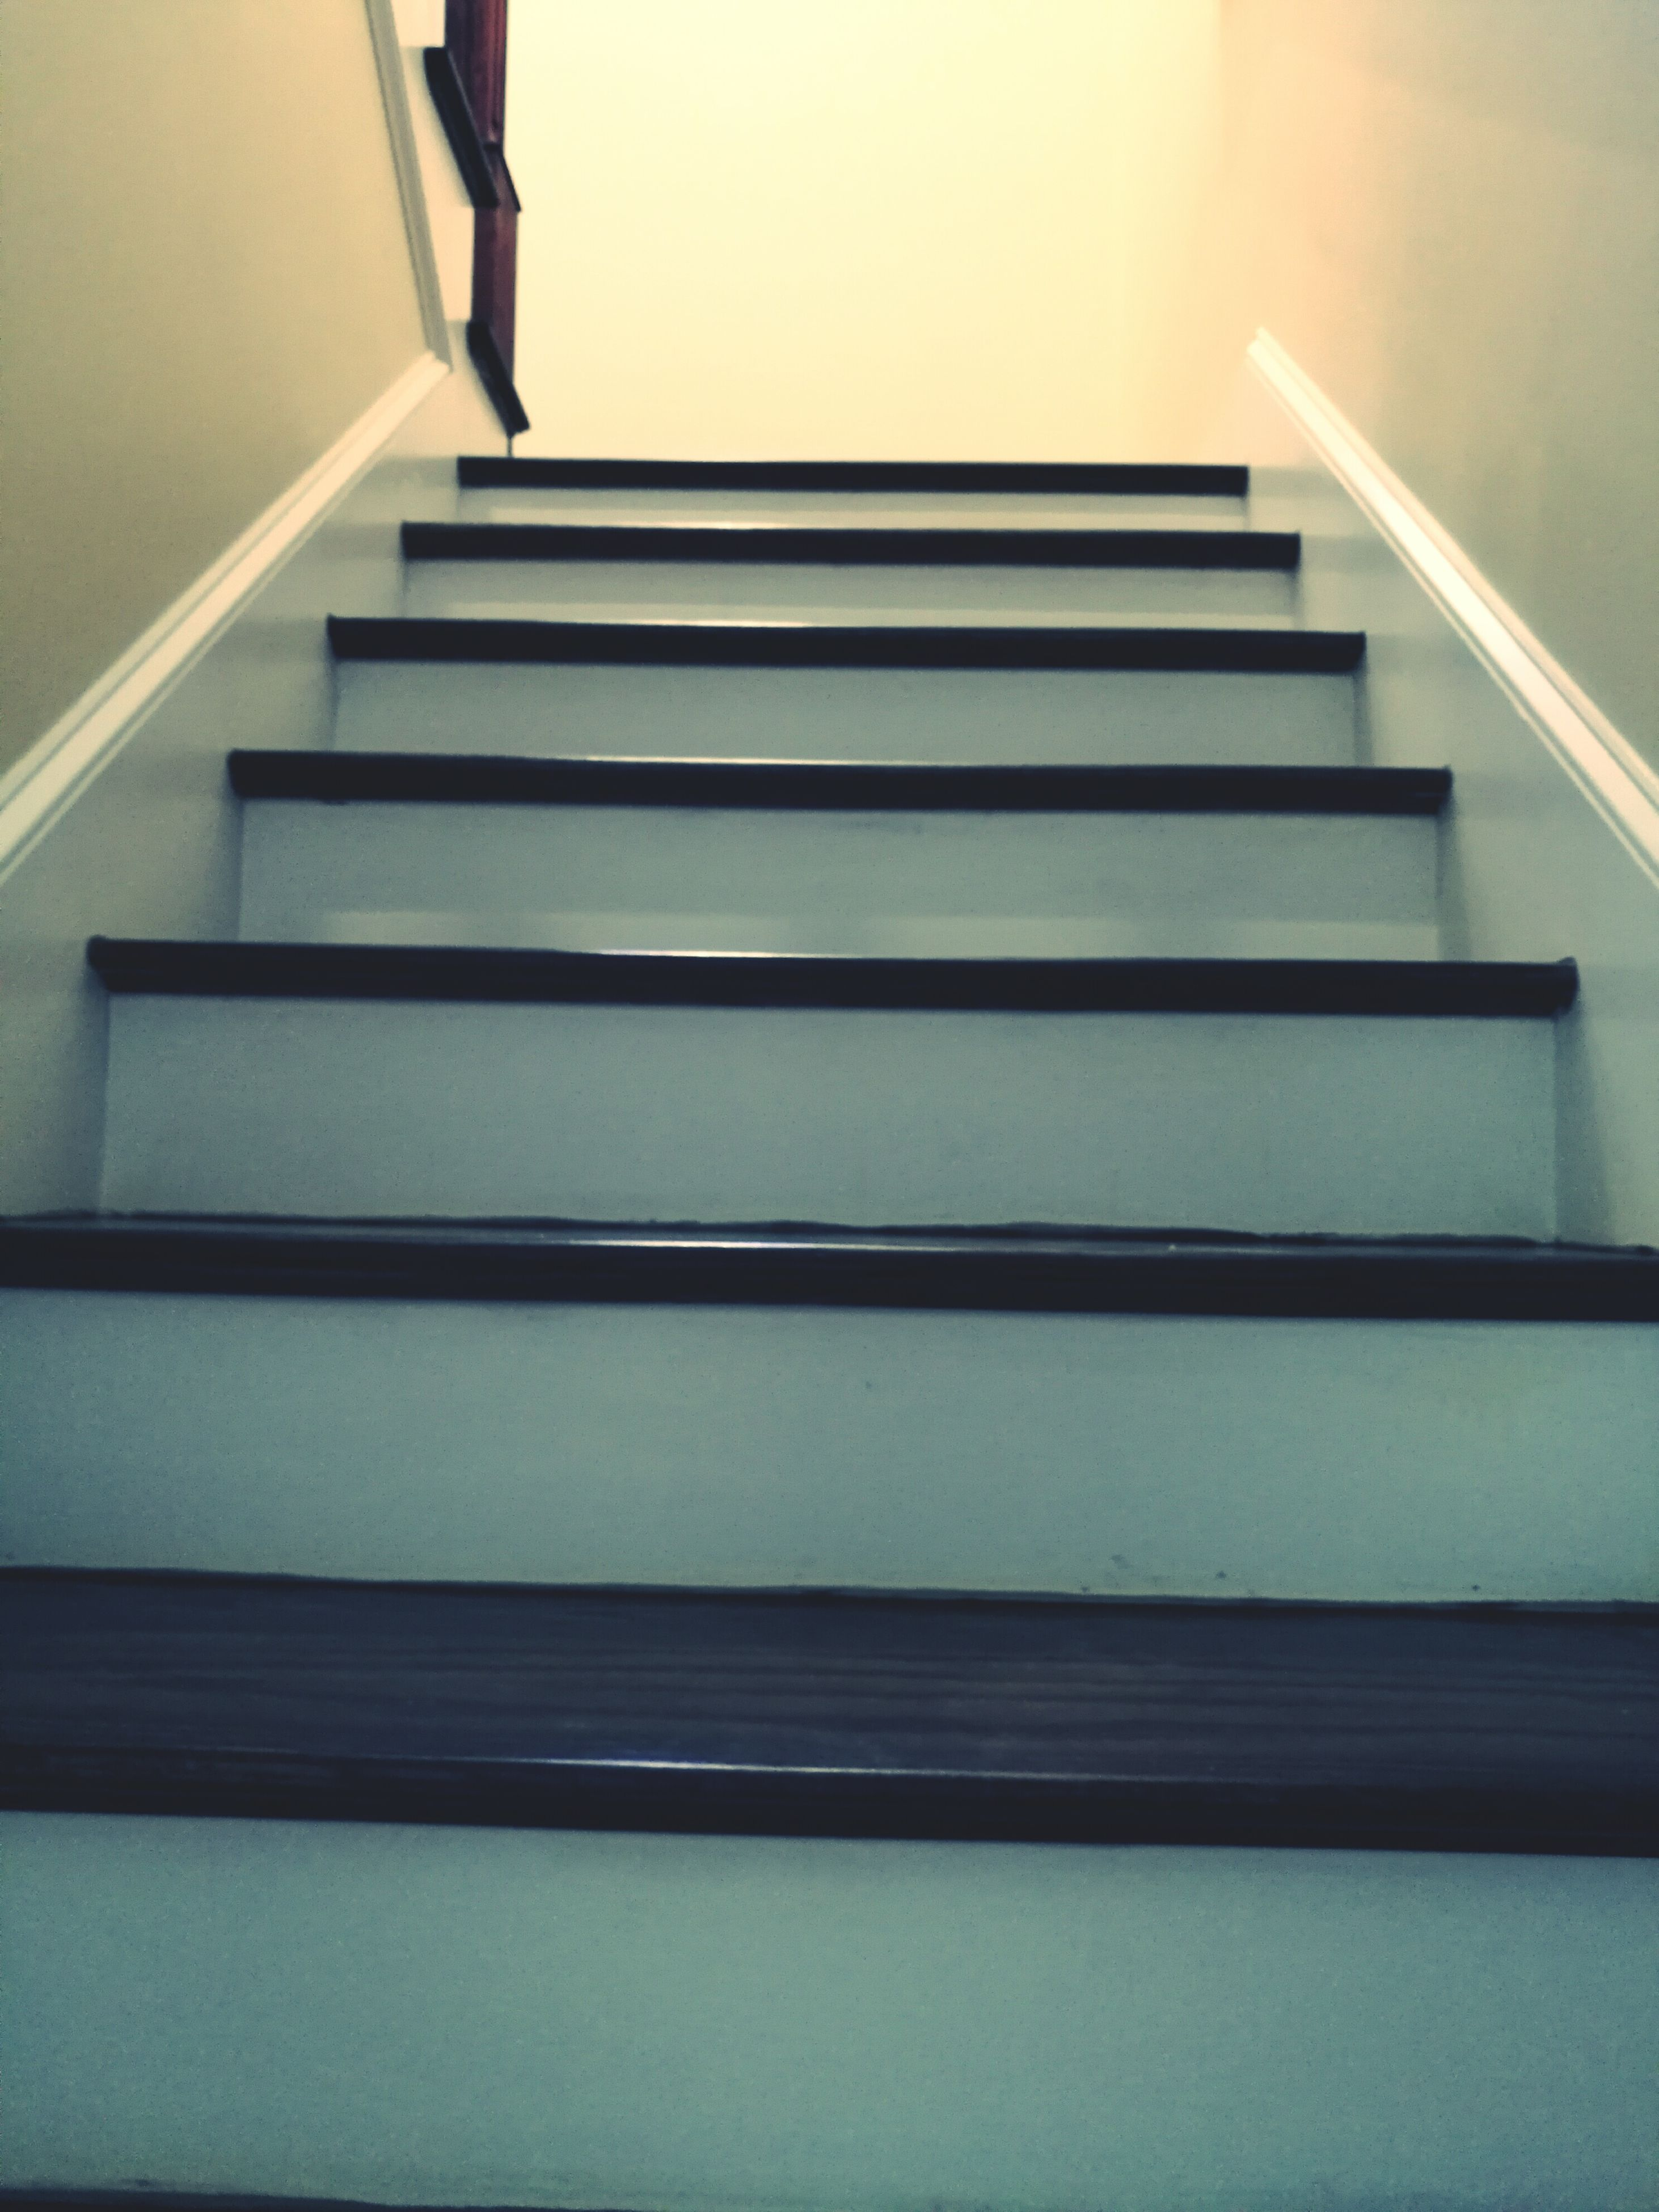 steps, staircase, stairs, building, no people, day, diminishing perspective, the way forward, empty, modern, close-up, repetition